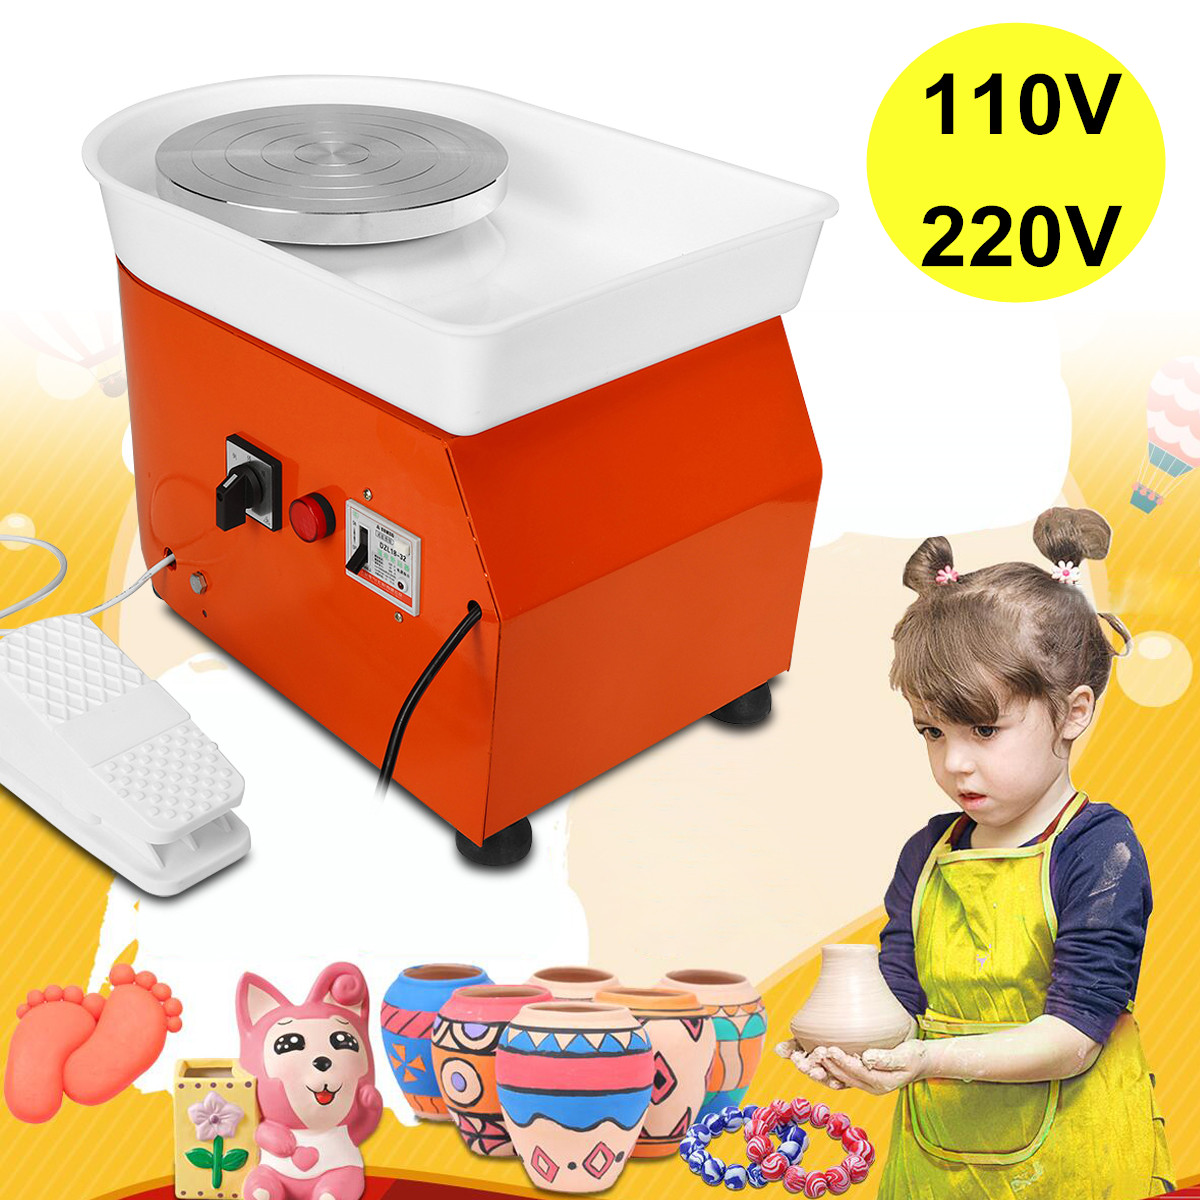 EU/AU AC220V 250W Pottery Wheel Machine 25cm Ceramic Work Ceramics Clay Art With Mobile Flexible Foot Pedal Smooth Low Noise